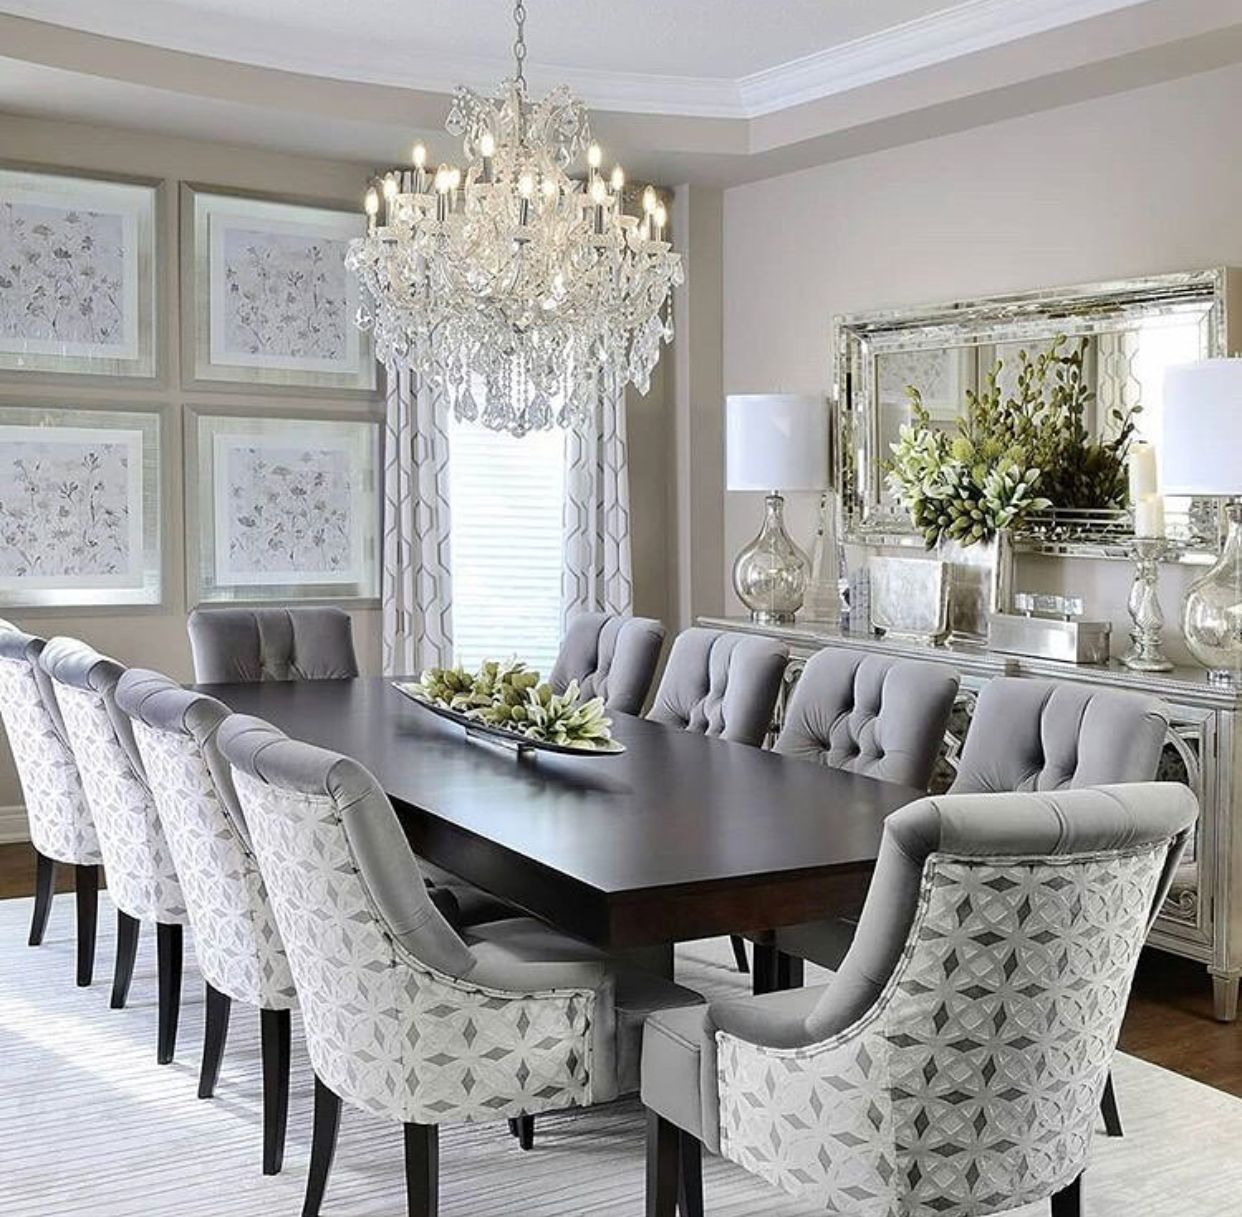 Formal dining room design ideas  Pin by Angelica Elizabeth on Decoración  Pinterest  Dining room